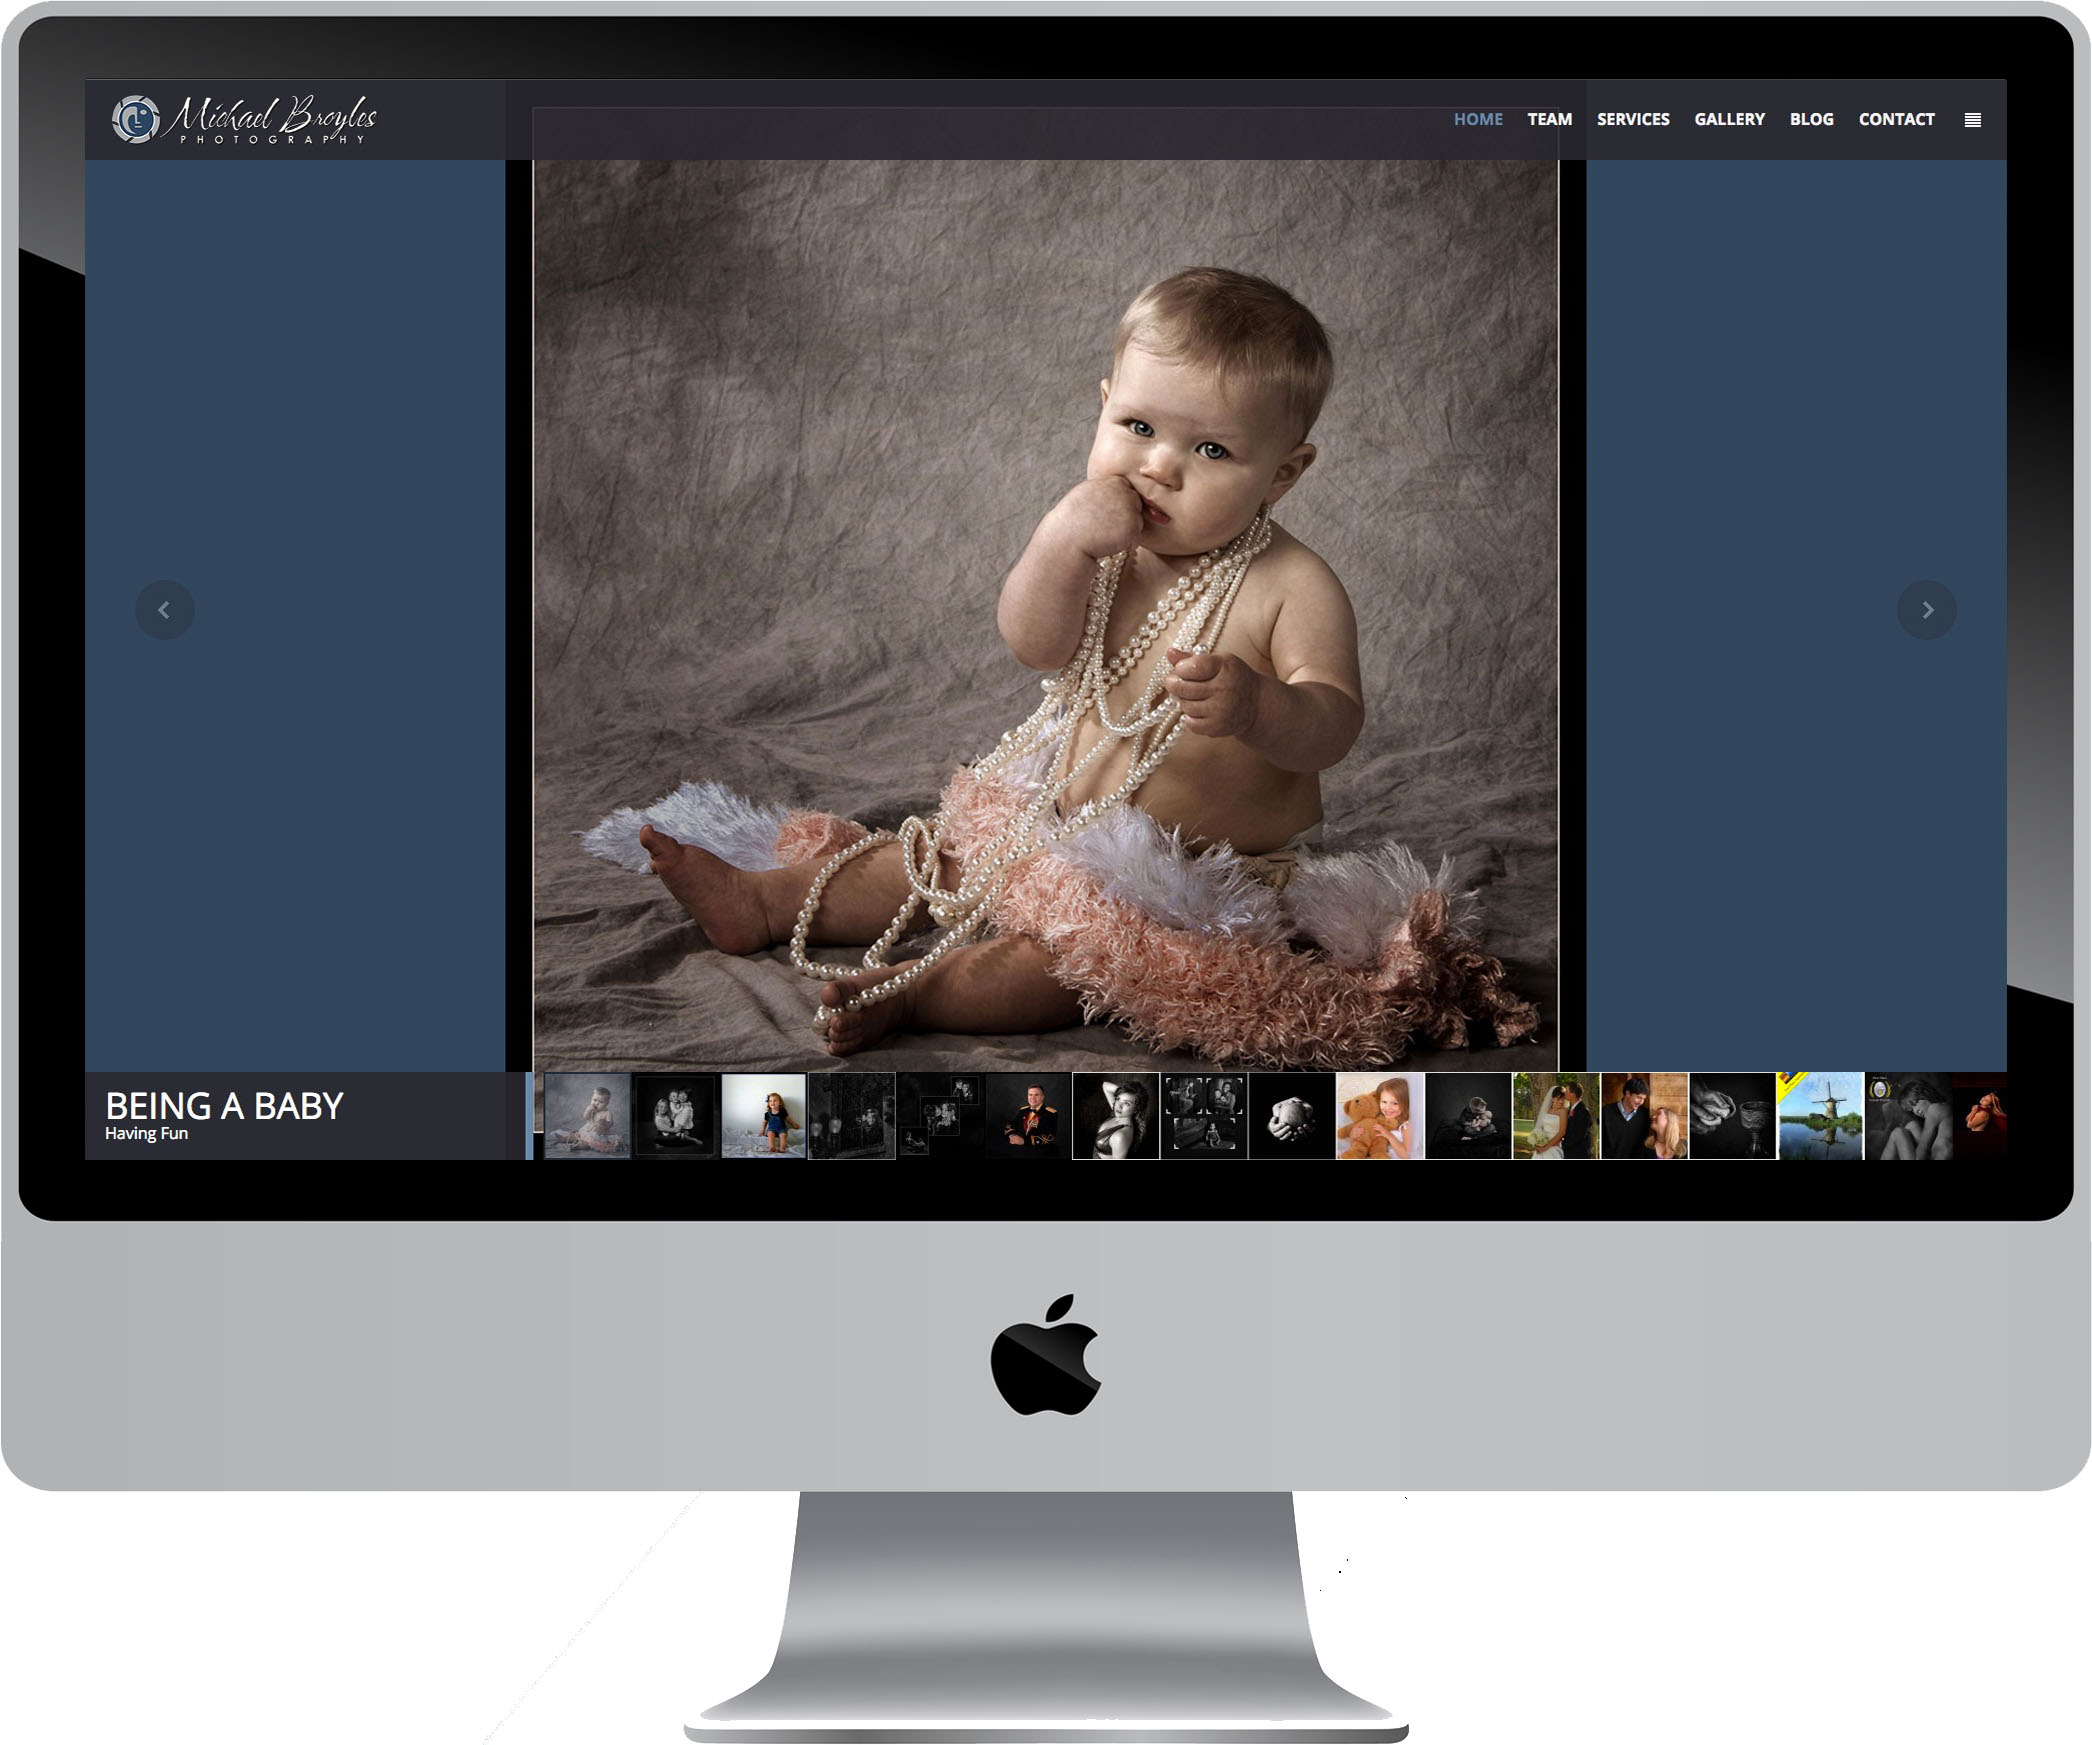 Michael Broyles Photography Web Design on a Desktop